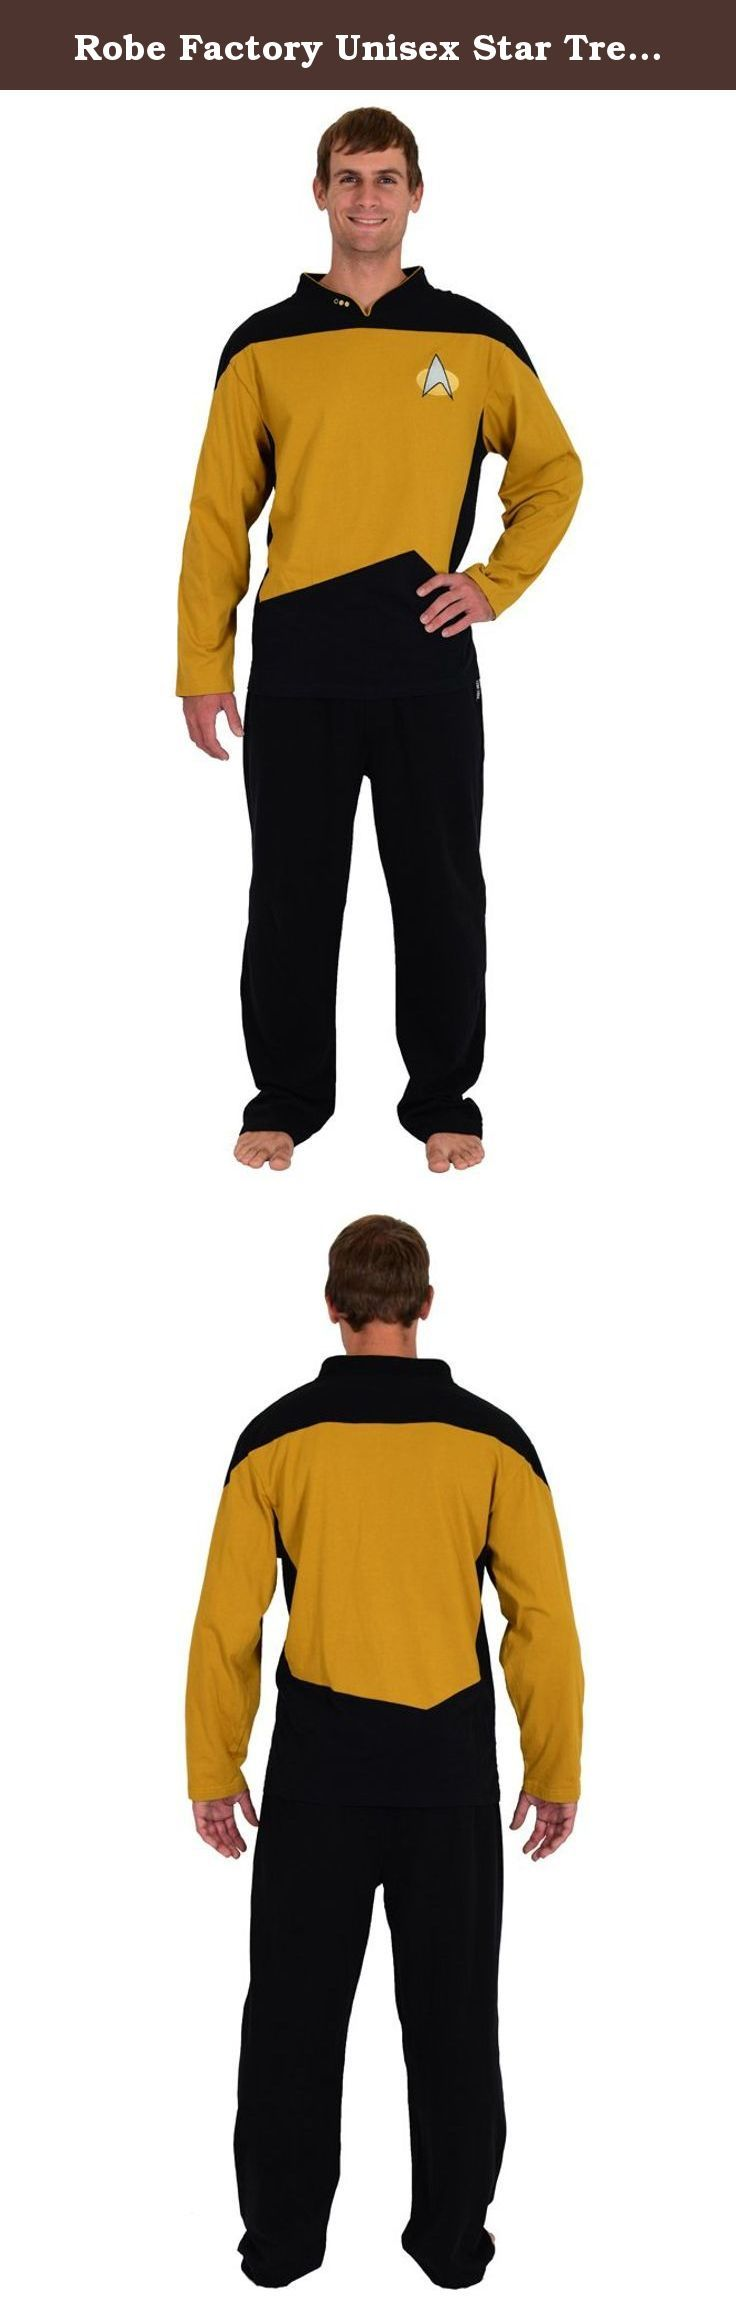 Robe Factory Unisex Star Trek NG Gold Operations Uniform Pajamas Set, Gold, S. Officially licensed CBS Star Trek: the original series apparel. Set comes with: cotton shirt printed with Starfleet insignia, rank on collar and cotton pants with Star Trek logo, button fly, drawstring. Material: Cotton.